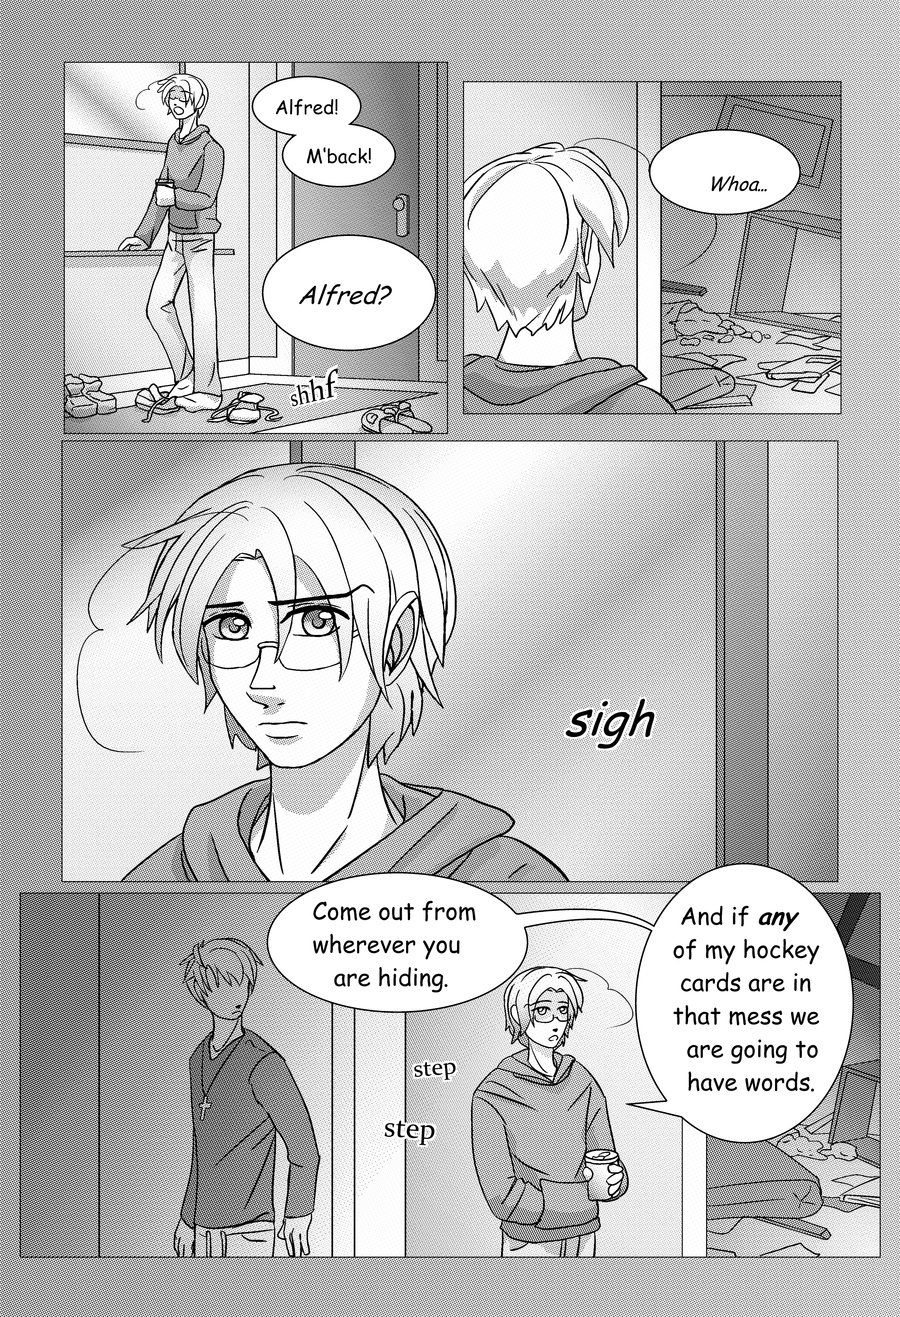 APH-Morning Pick Me Up pg1 by TheLostHype.deviantart.com on @deviantART - First page of a short fan-comic made to celebrate Canada Day and Independence Day. Whoa...what happened to that room? Alfred...did you do this?